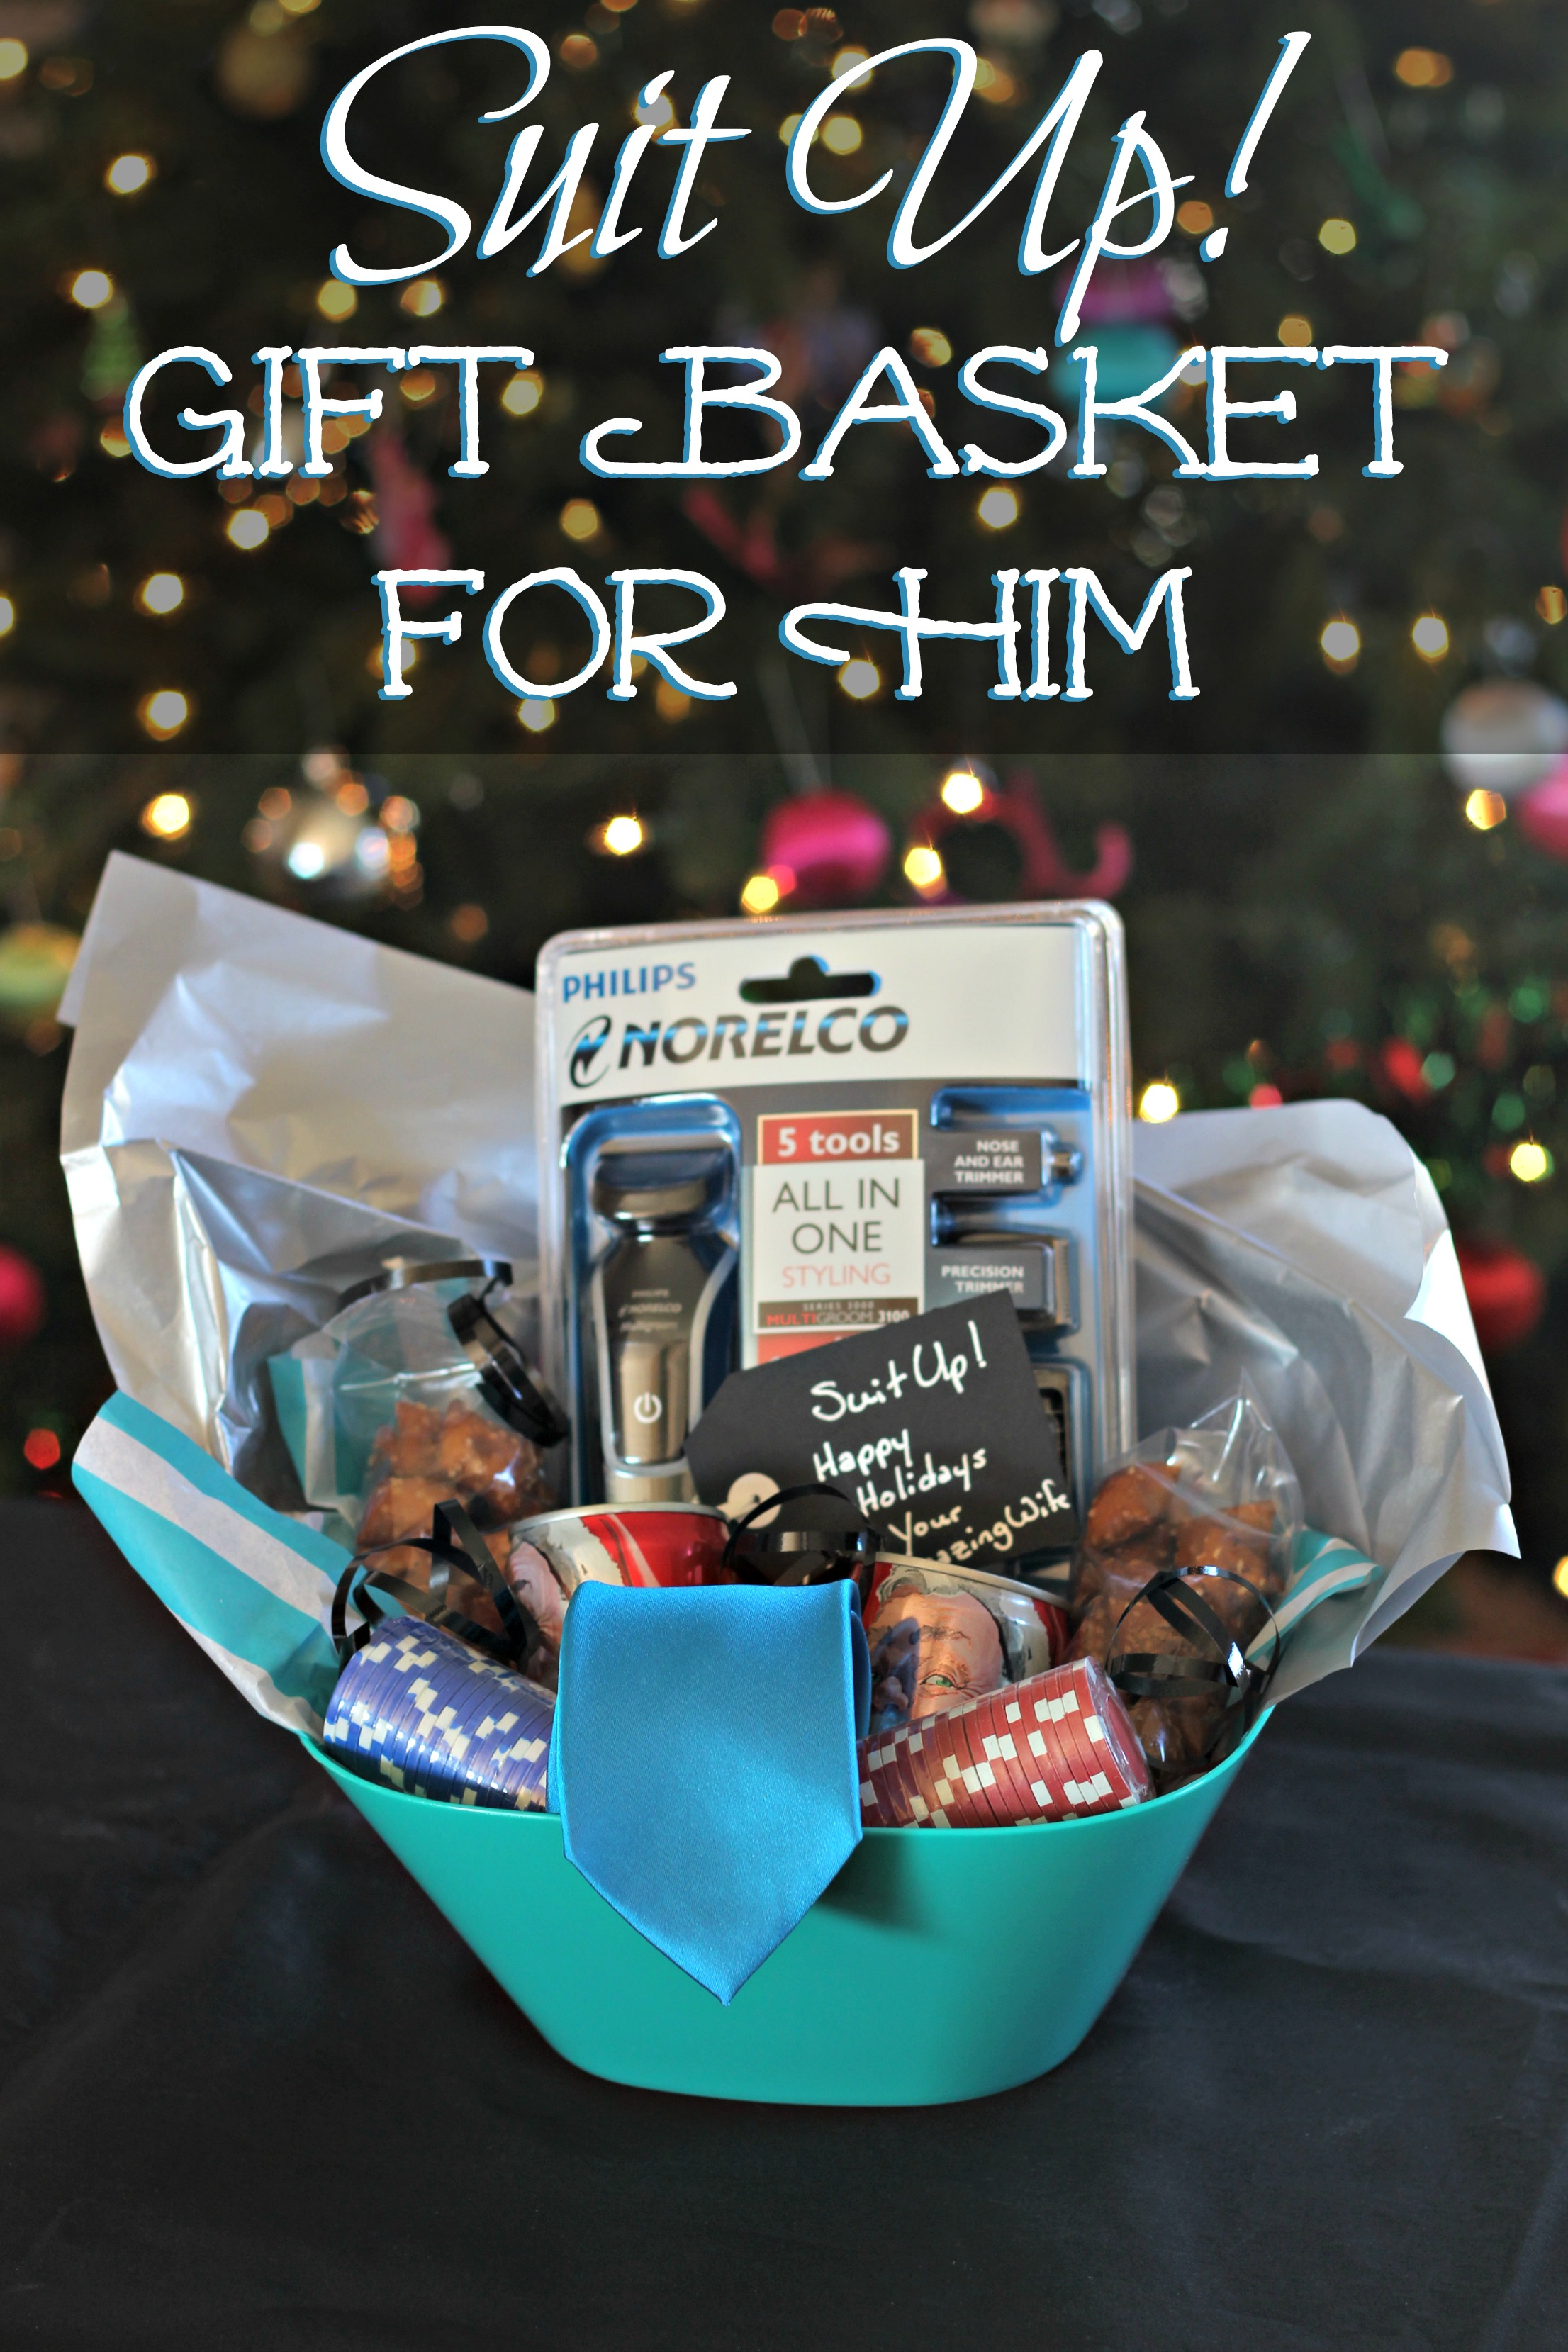 Gifts For 17 Year Old Girls Don T Break The Bank: Suit Up! Gift Basket For Him